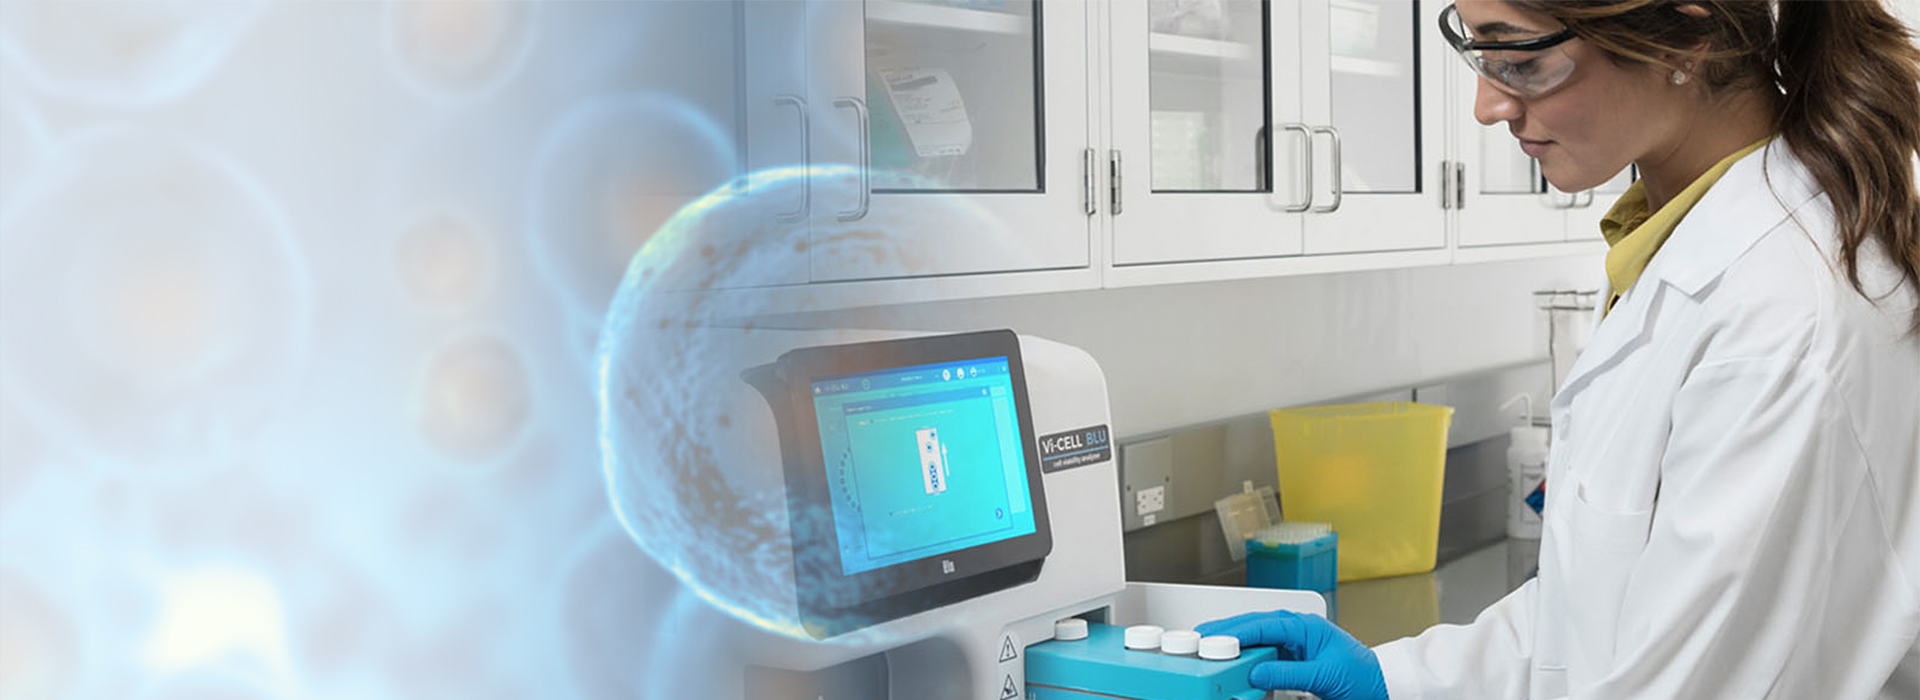 Beckman Coulter Life Sciences associate in lab